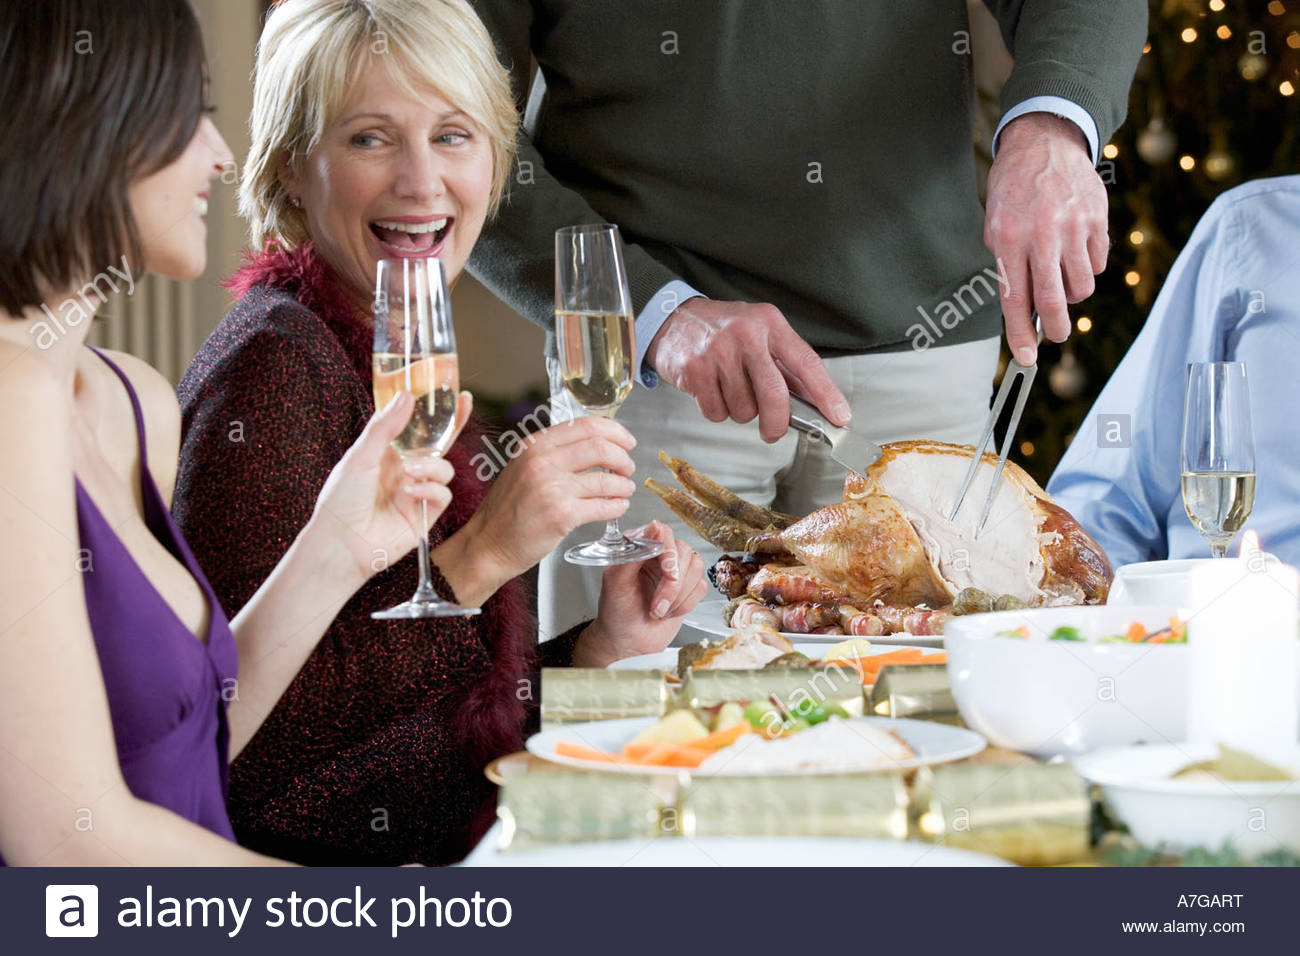 A family sitting down for Christmas dinner - Stock Image